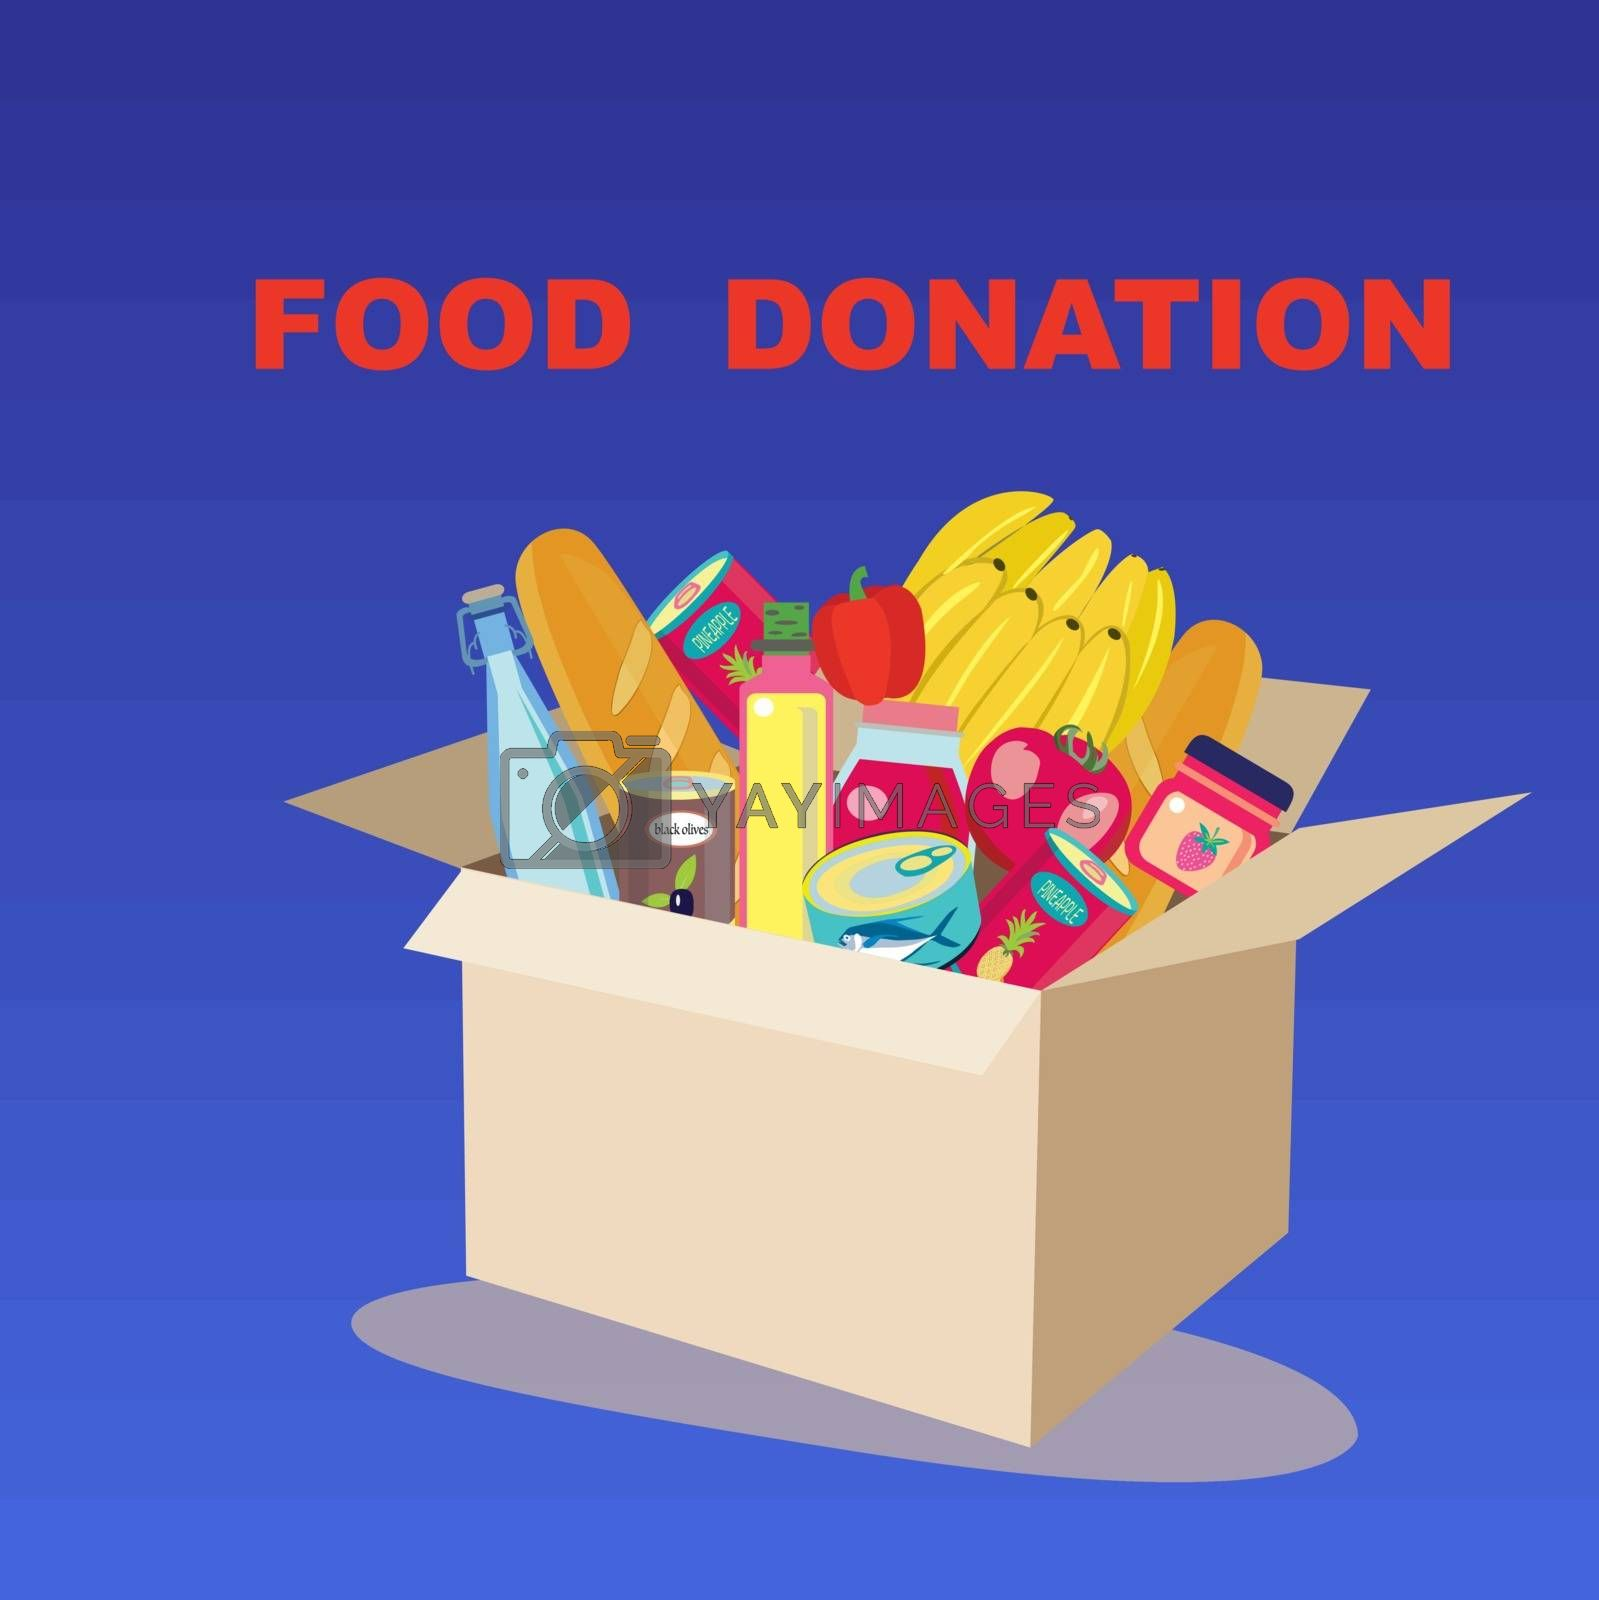 Food Donation Box banner. Cardboard box full of charity donation box with food, humanitarian support. Flat vector illustration.